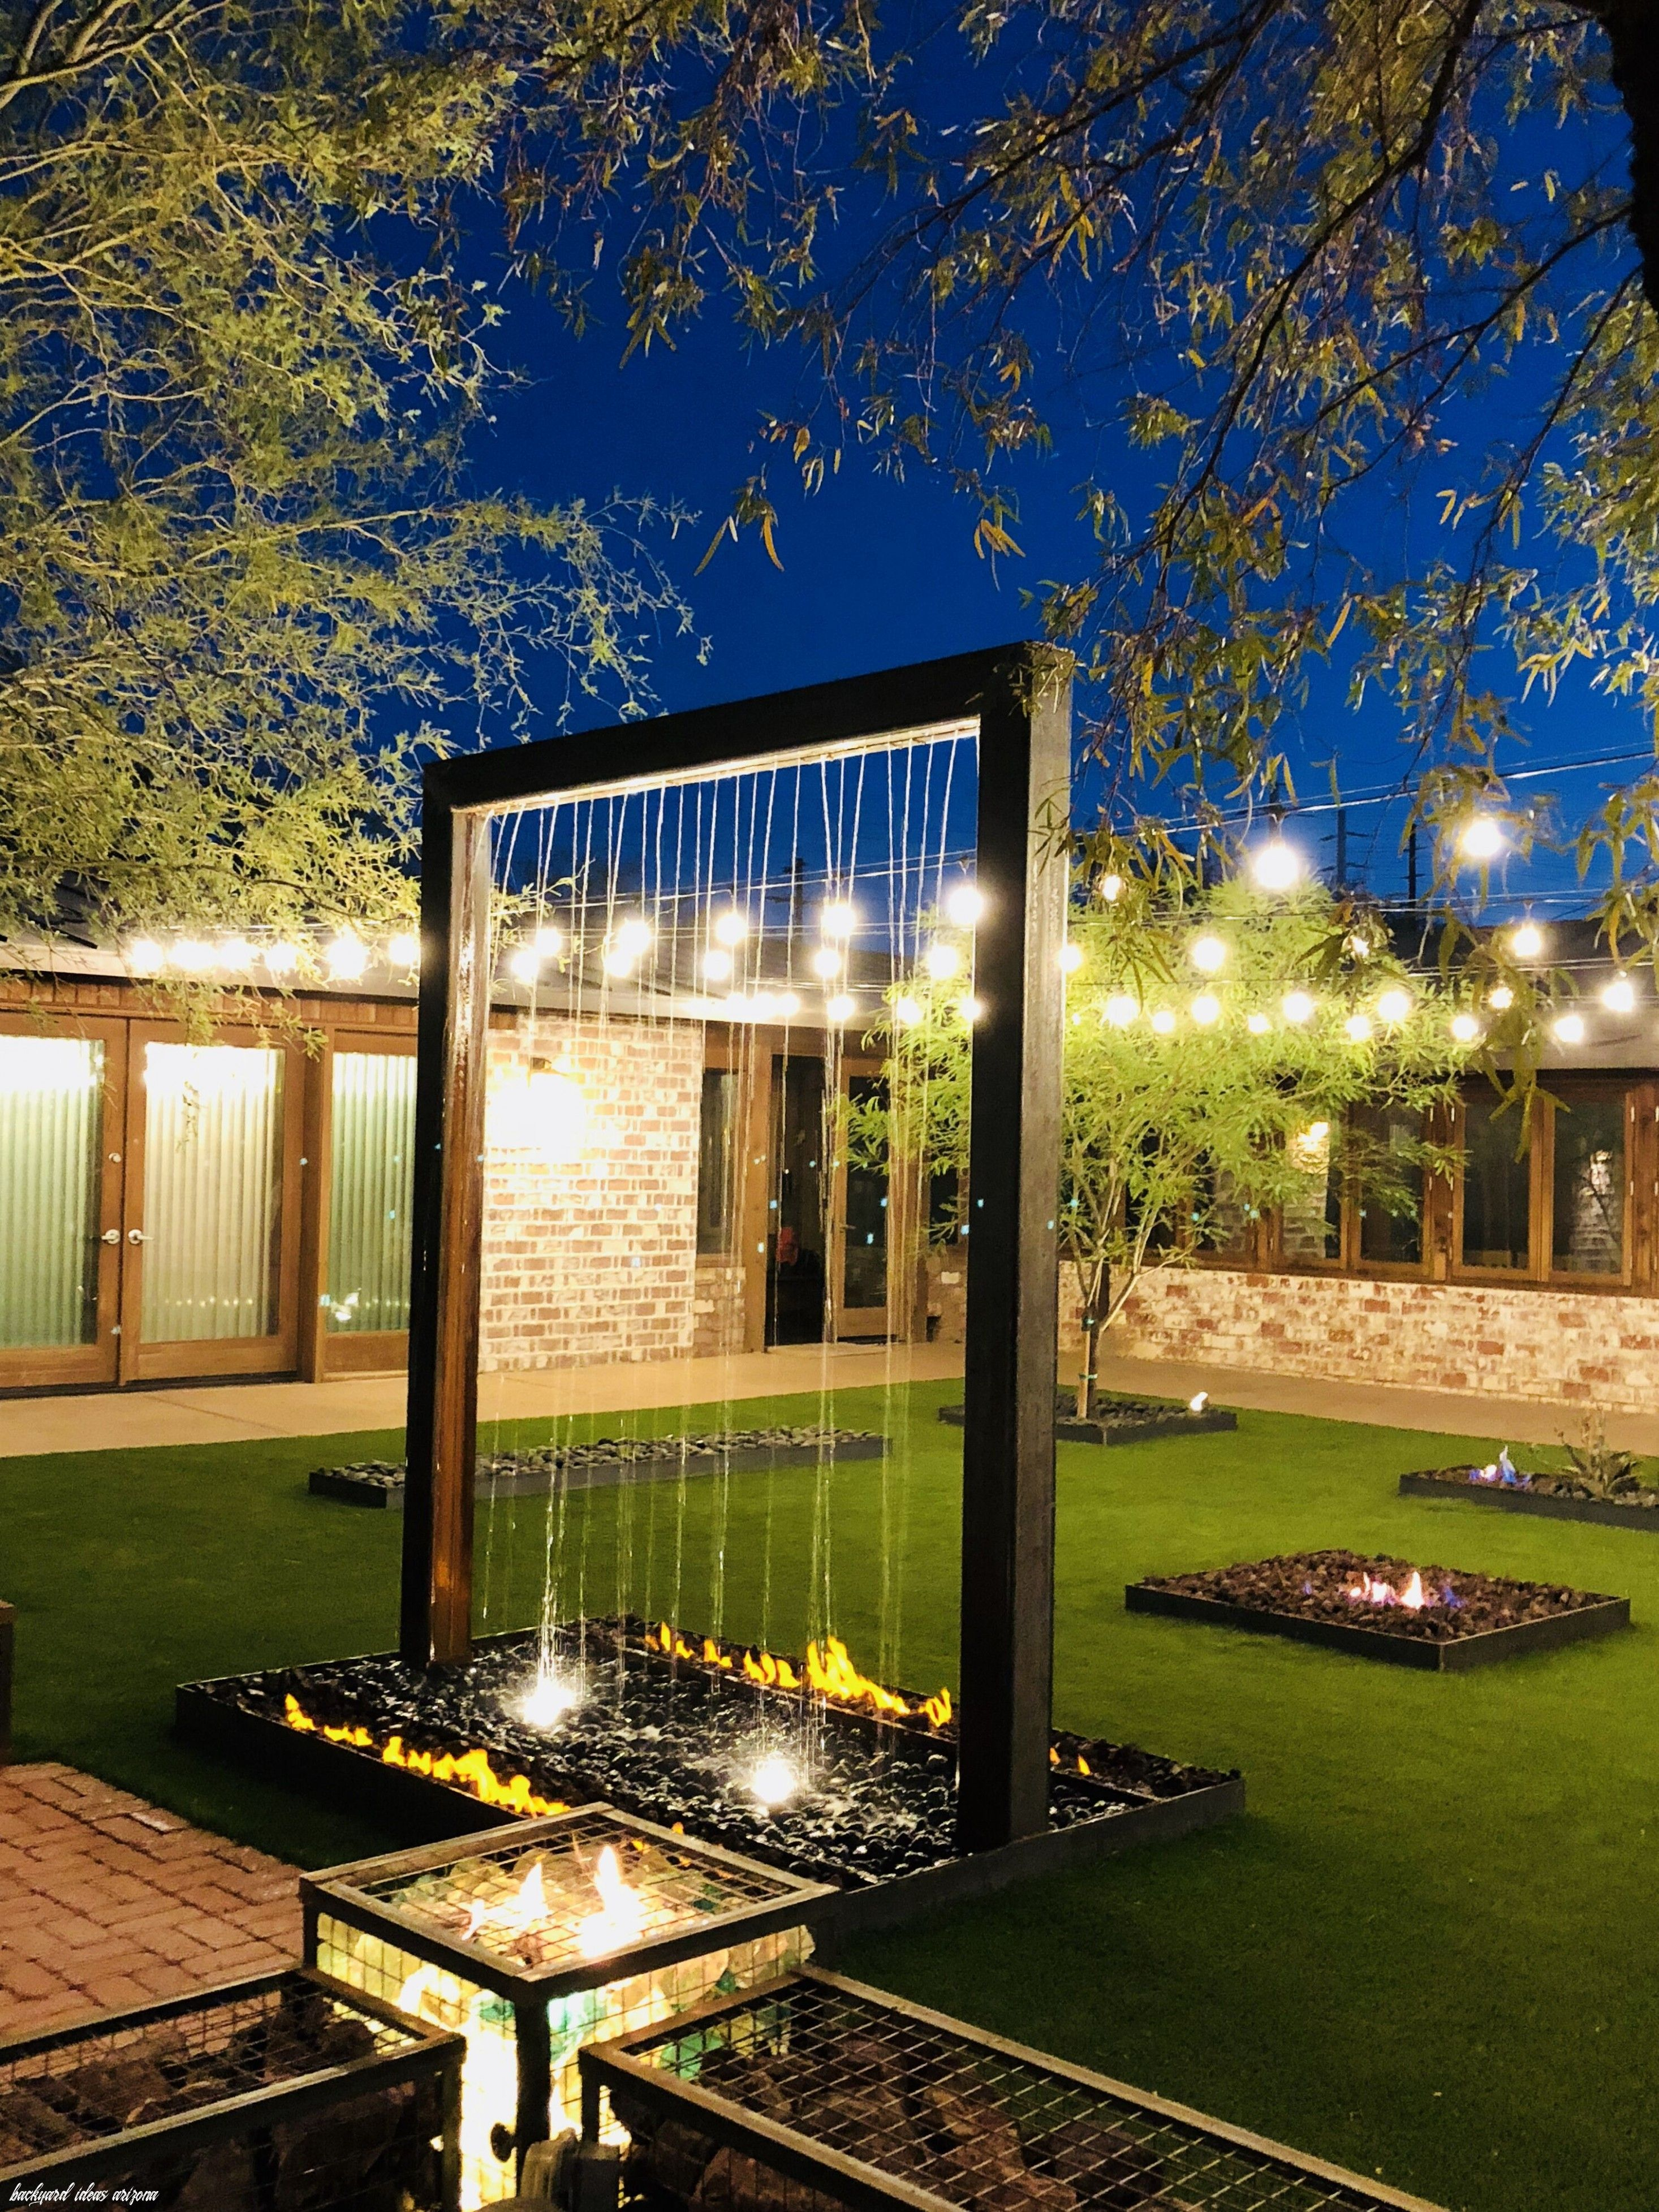 17 Backyard Ideas Arizona in 2020 Backyard, Arizona